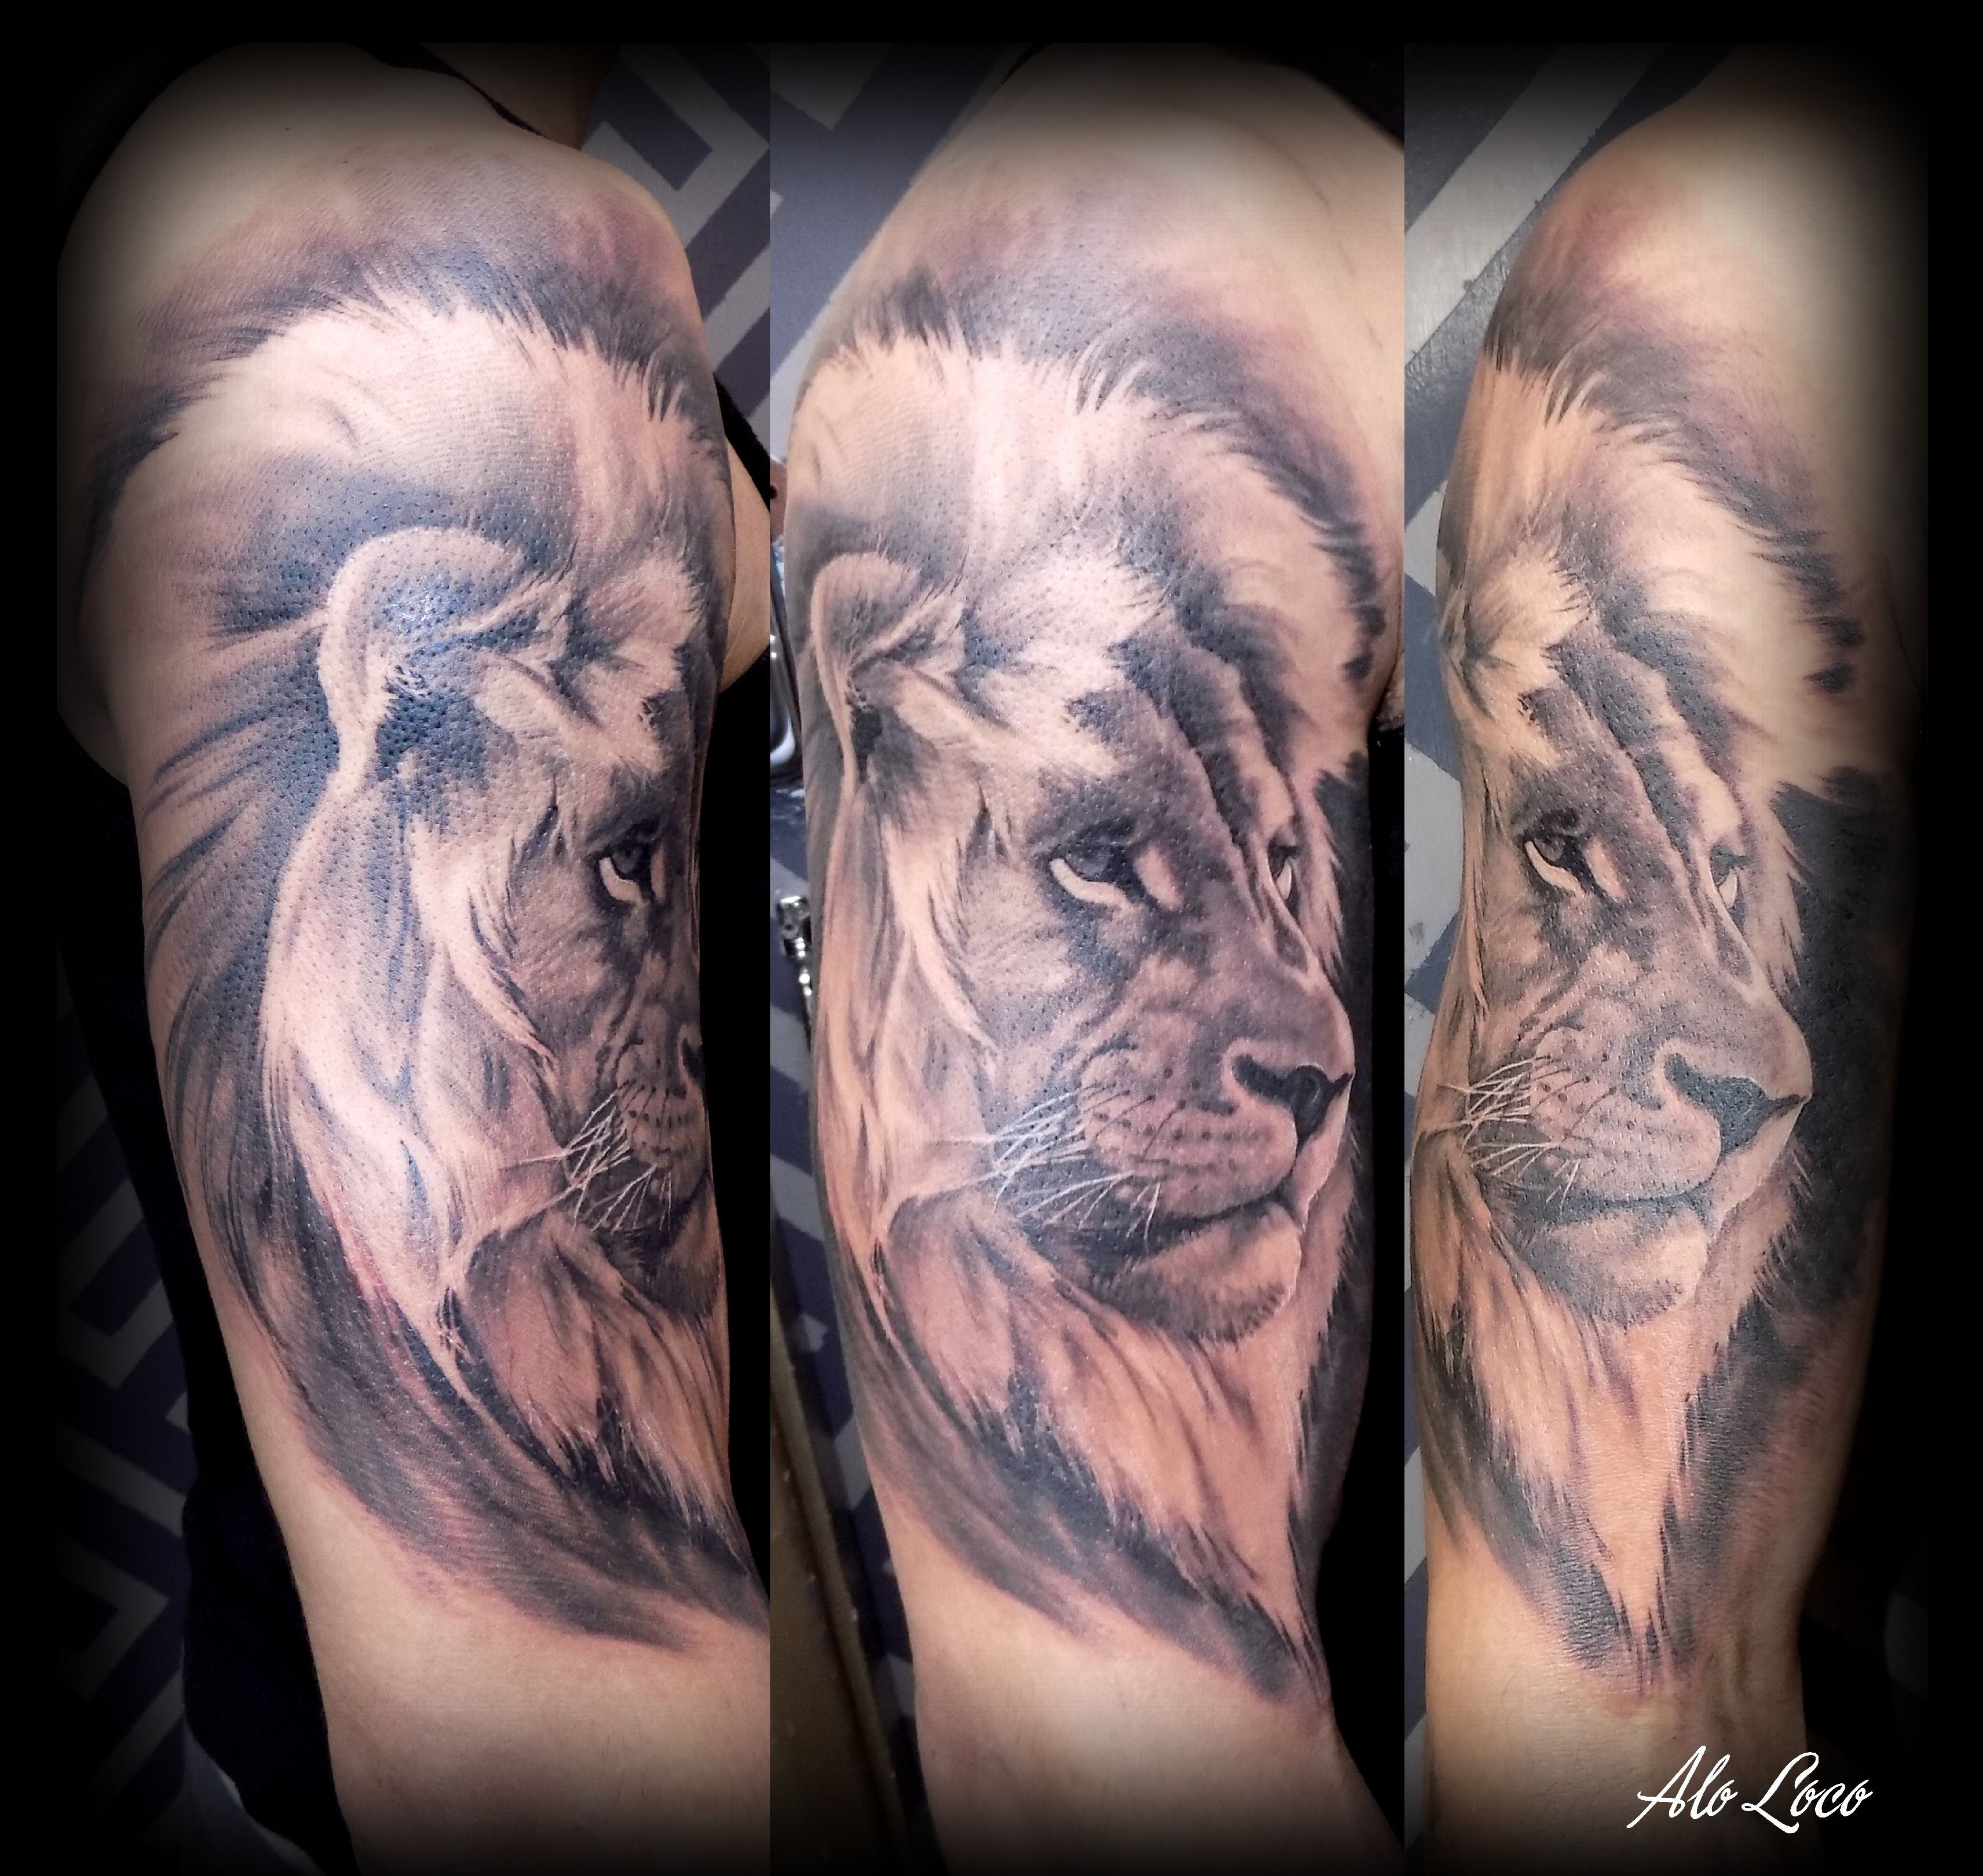 150 realistic lion tattoos and meanings 2017 collection - Alo Loco London Tattoo Artist Realistic Lion Portrait Tattoo